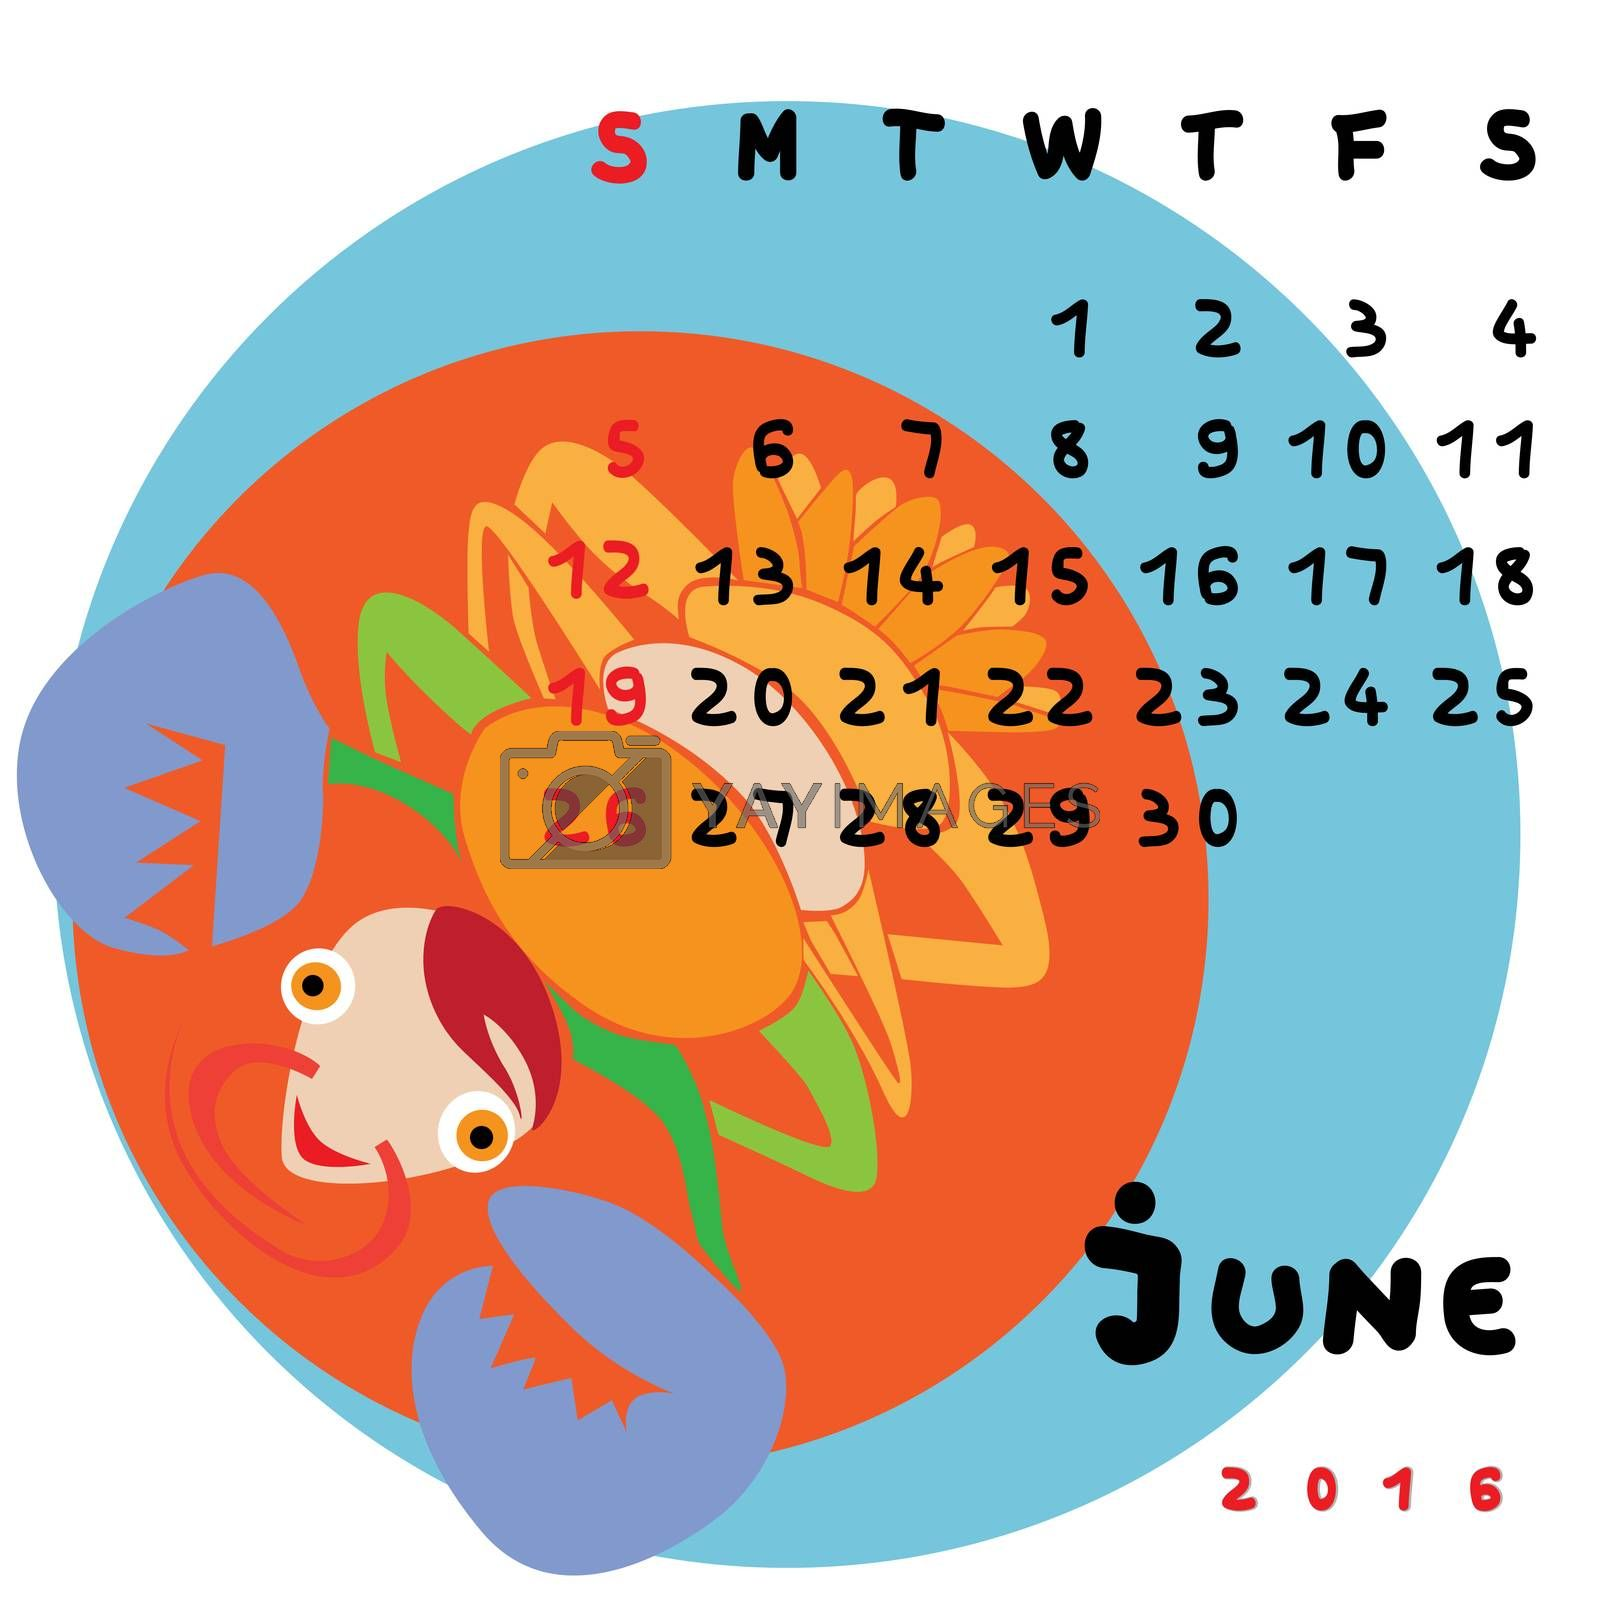 Graphic illustration of the calendar of June 2016 with original hand drawn text and colored clip art of Cancer zodiac sign